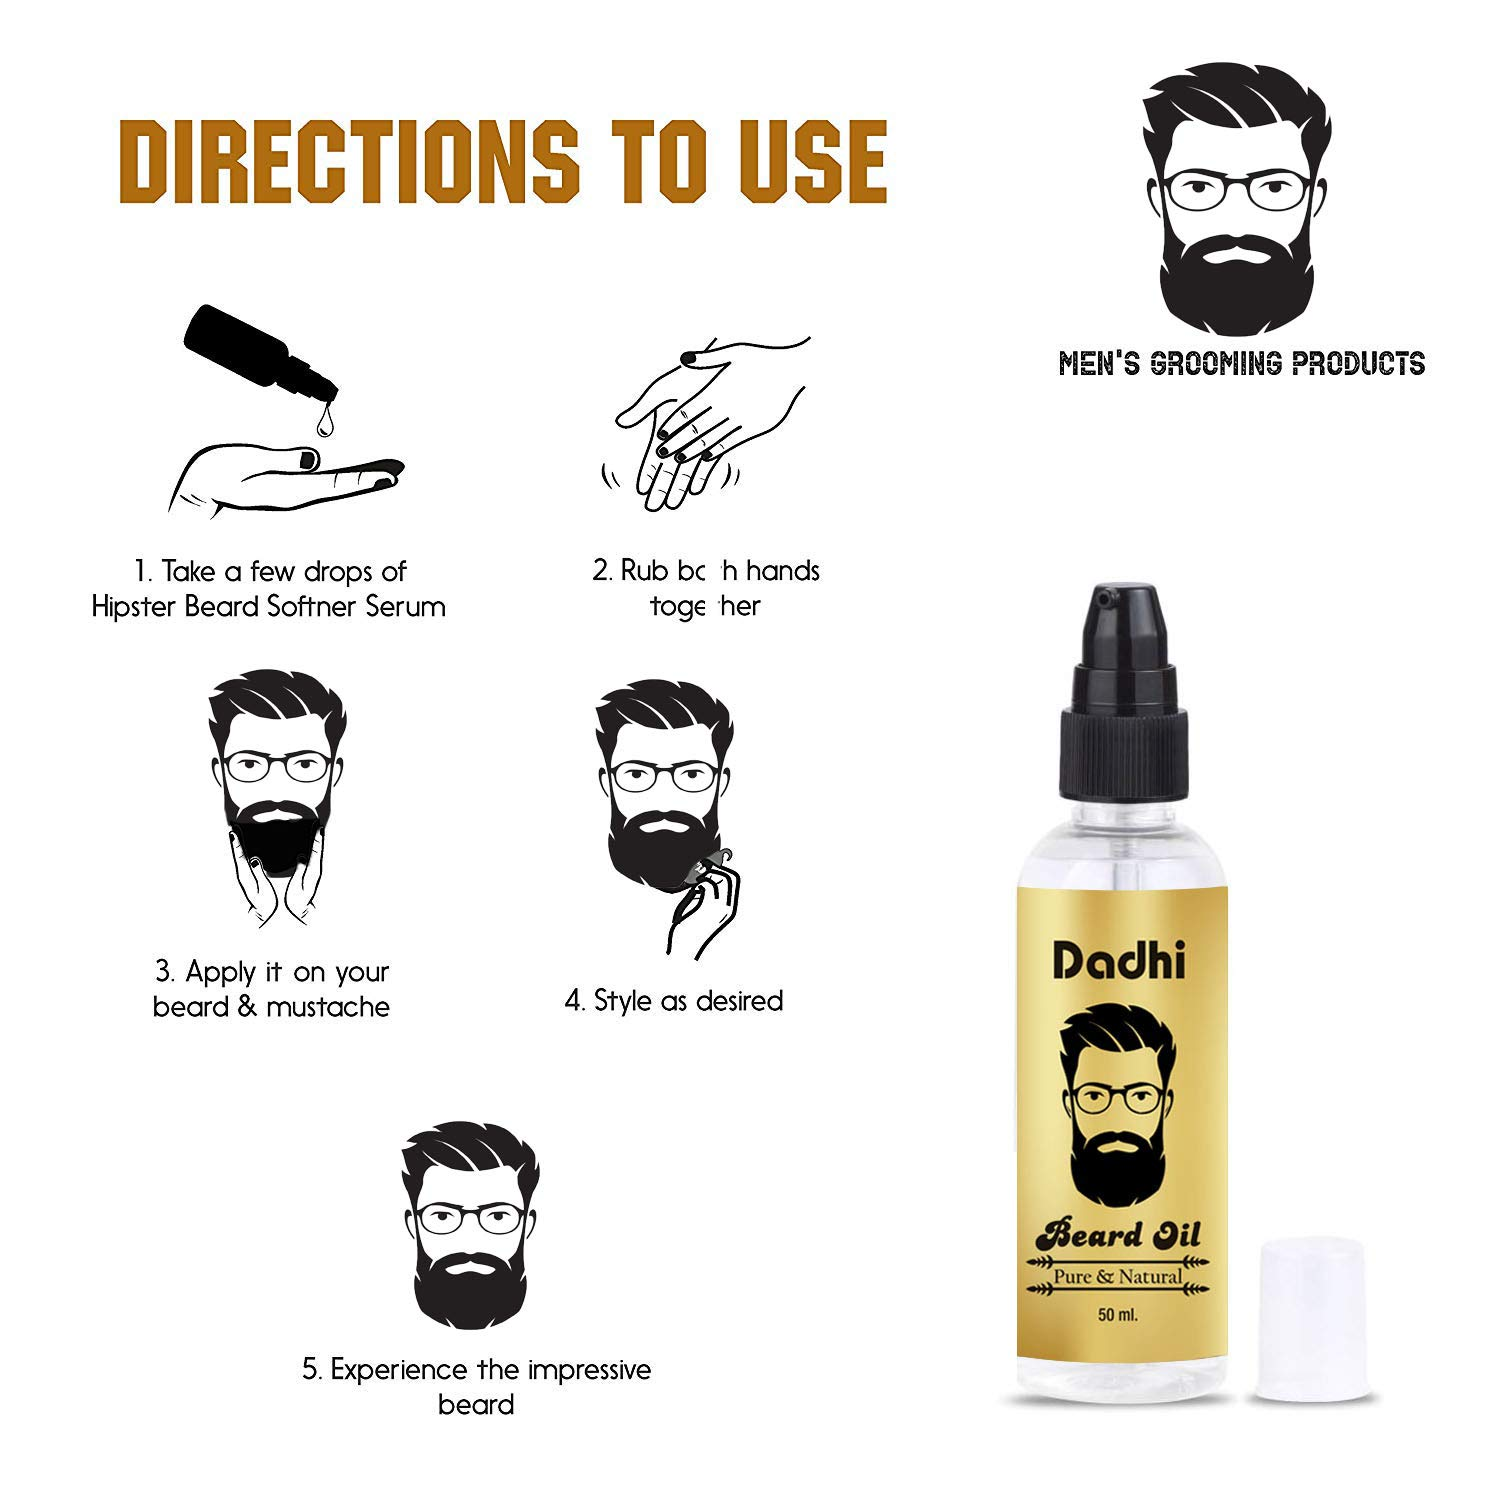 Buy Dadhi Beard and Hair Growth Oil - 50 ml Online at Low